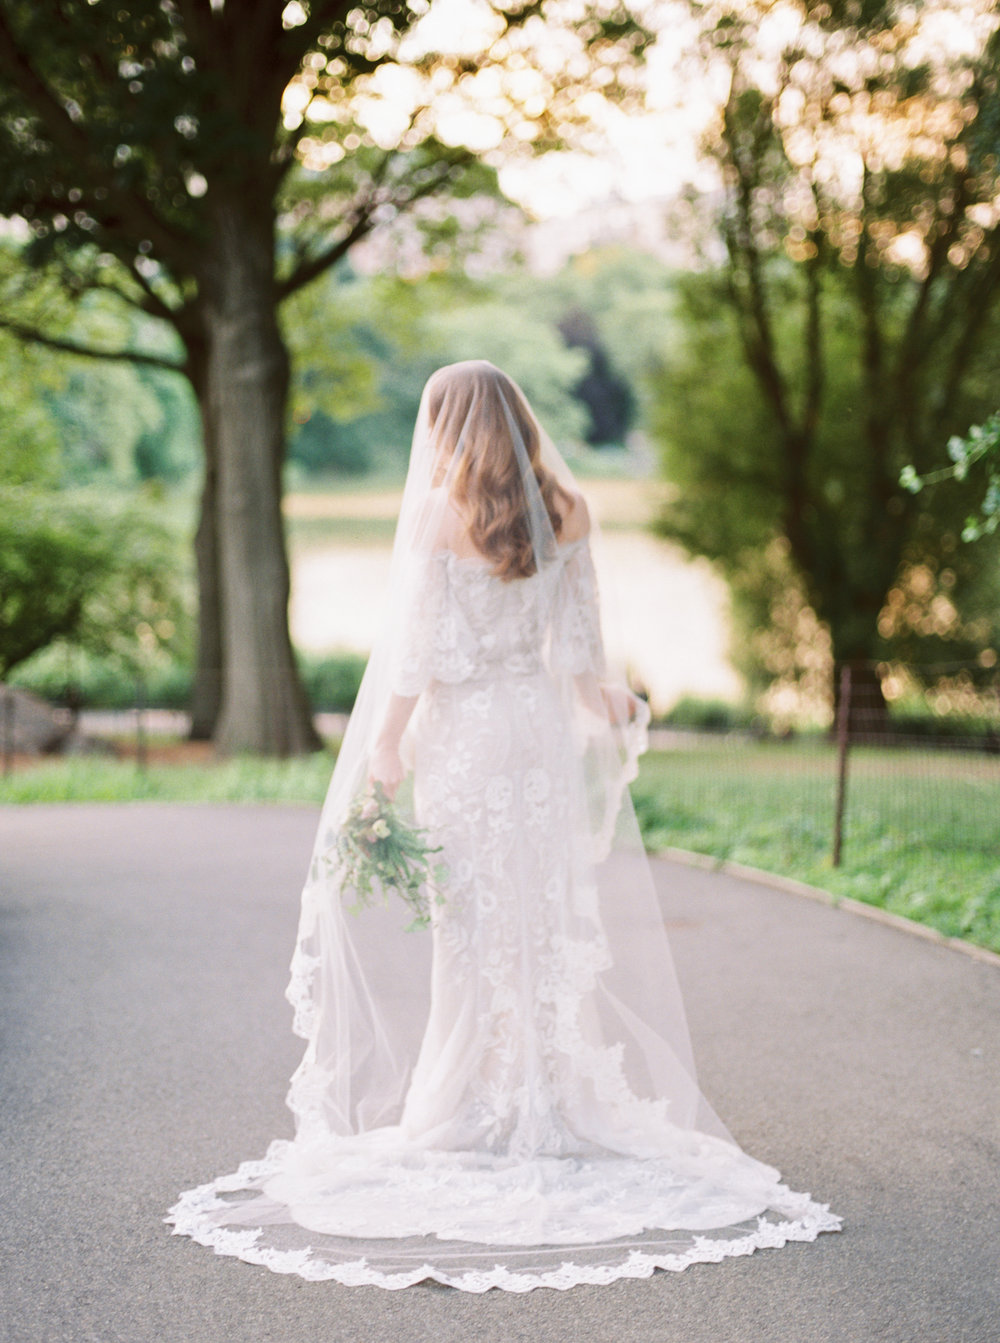 Marchesa Bride in Central Park